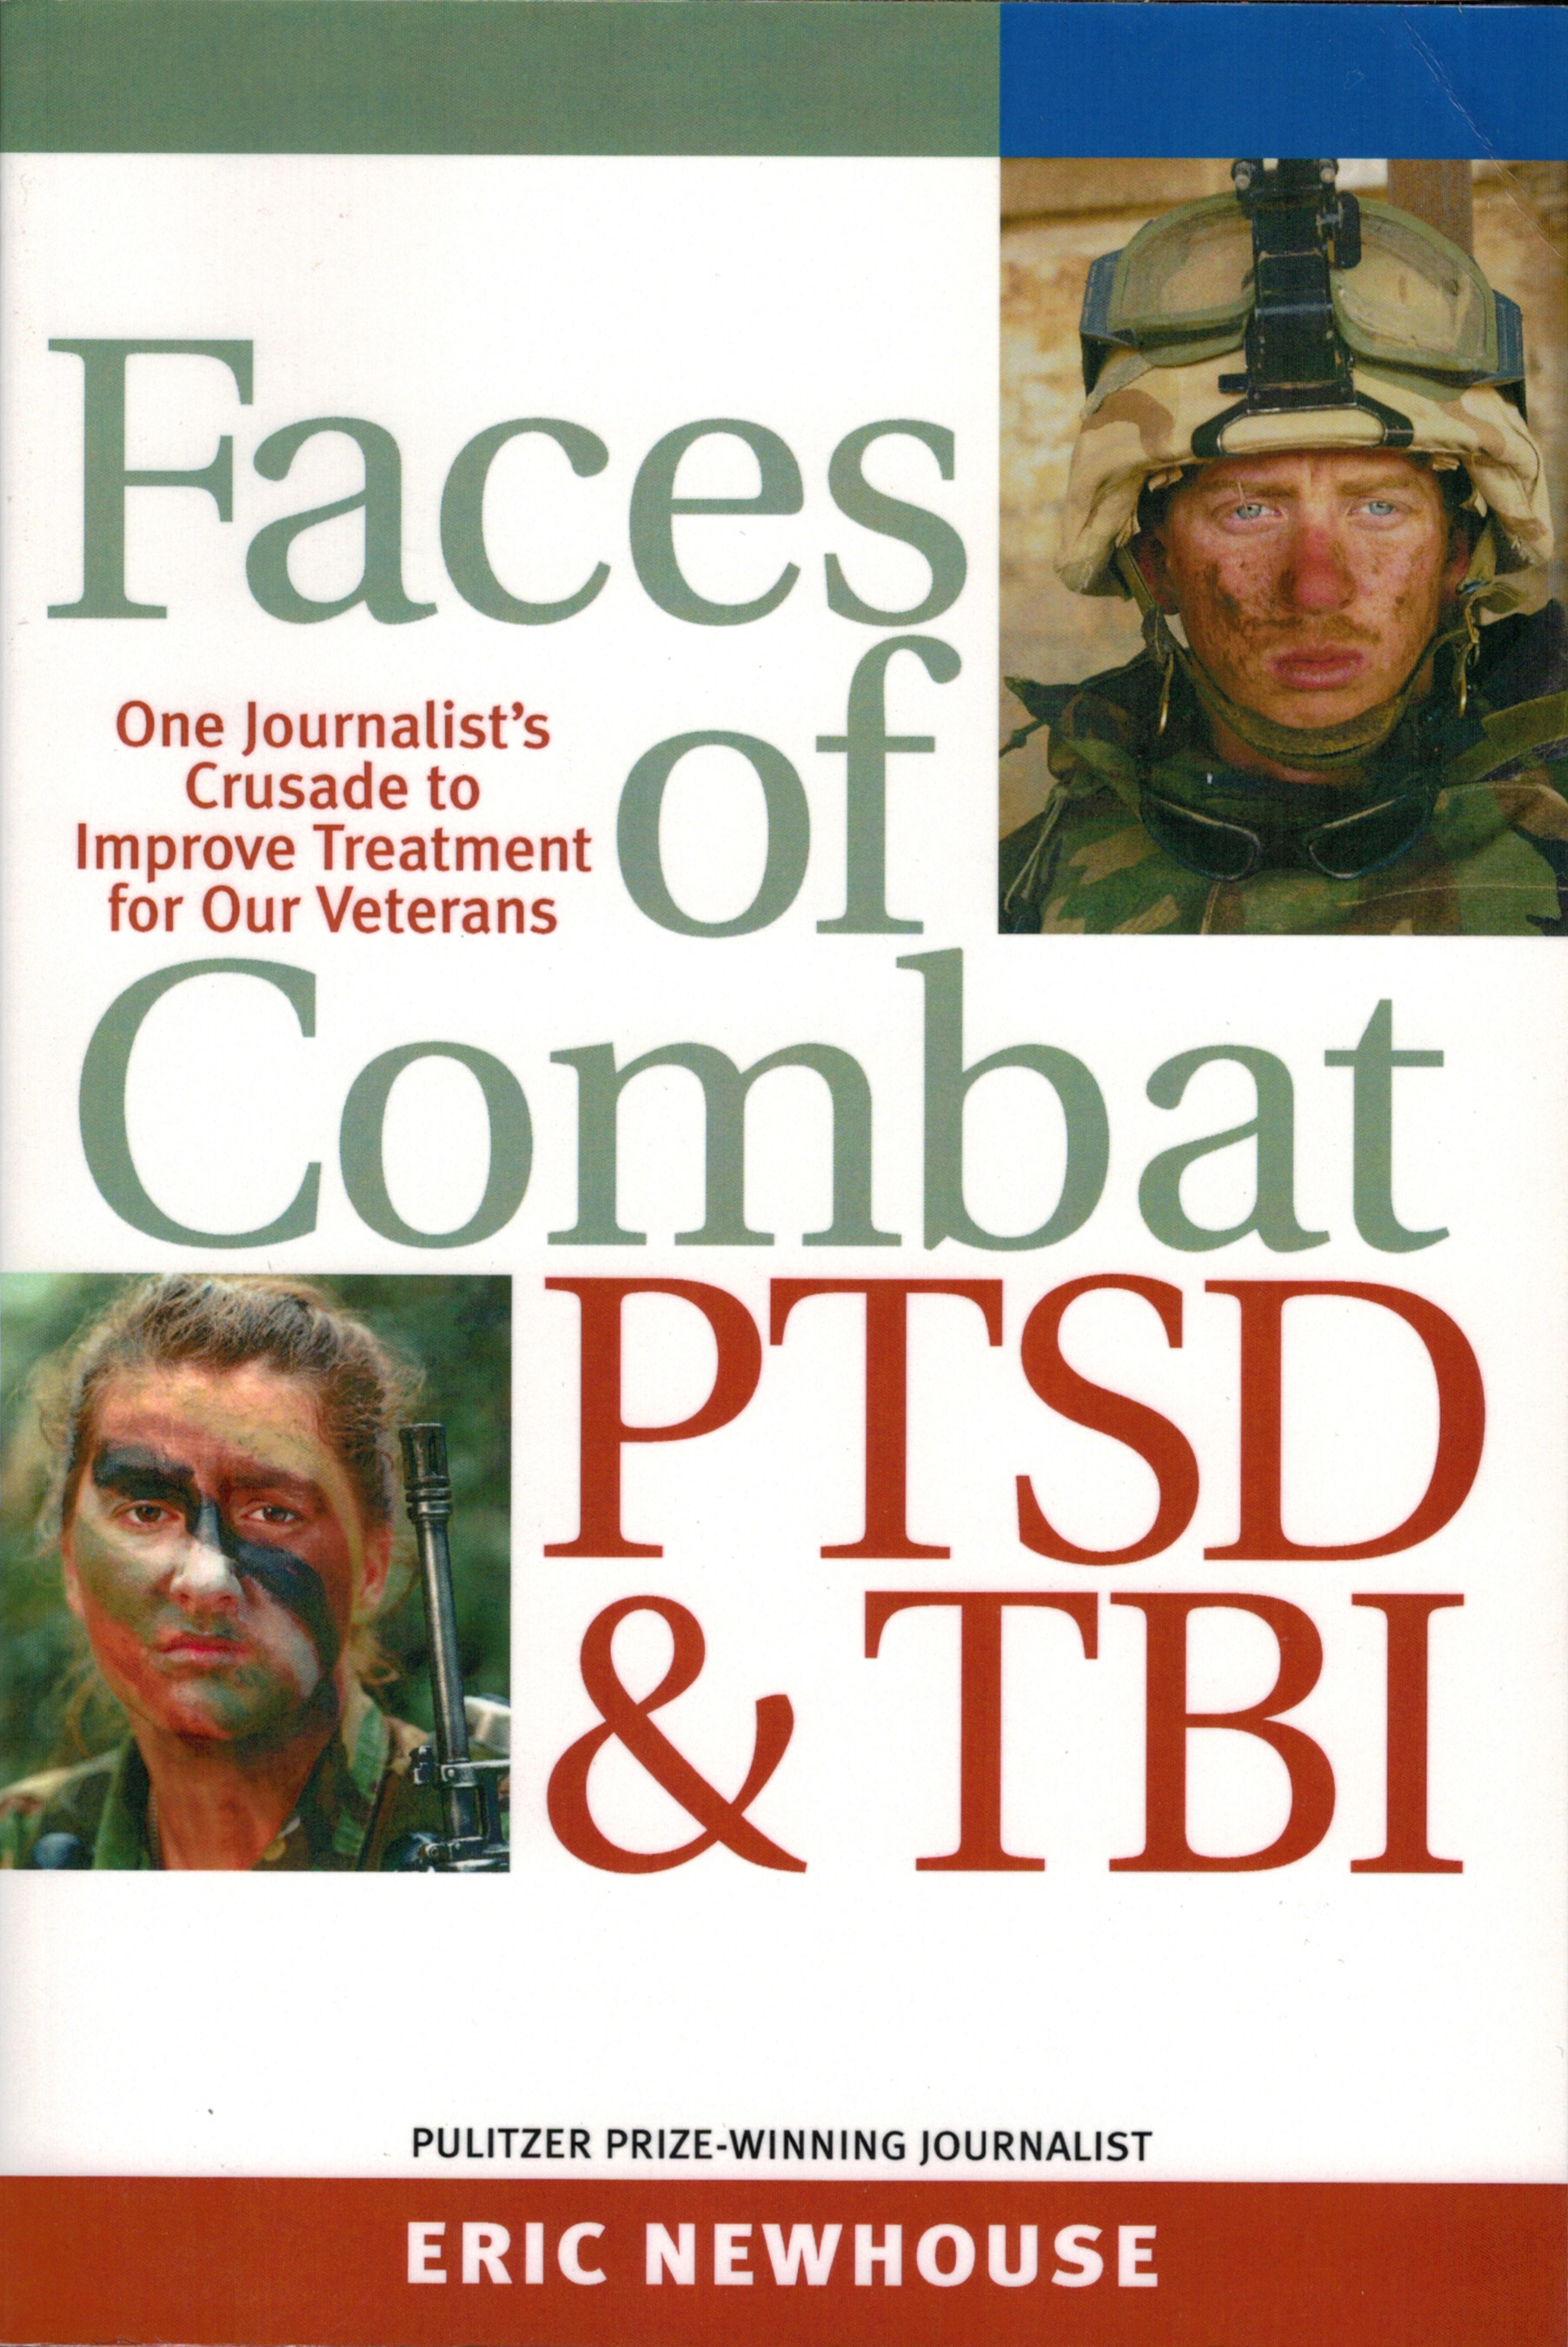 treatments of combat veterans with ptsd One in four recent combat veterans treated at vha from 2004 to 2009 had a diagnosis of ptsd 7 percent had a diagnosis of tbi using data for recent veterans treated by vha from 2004 to 2009, cbo found that.